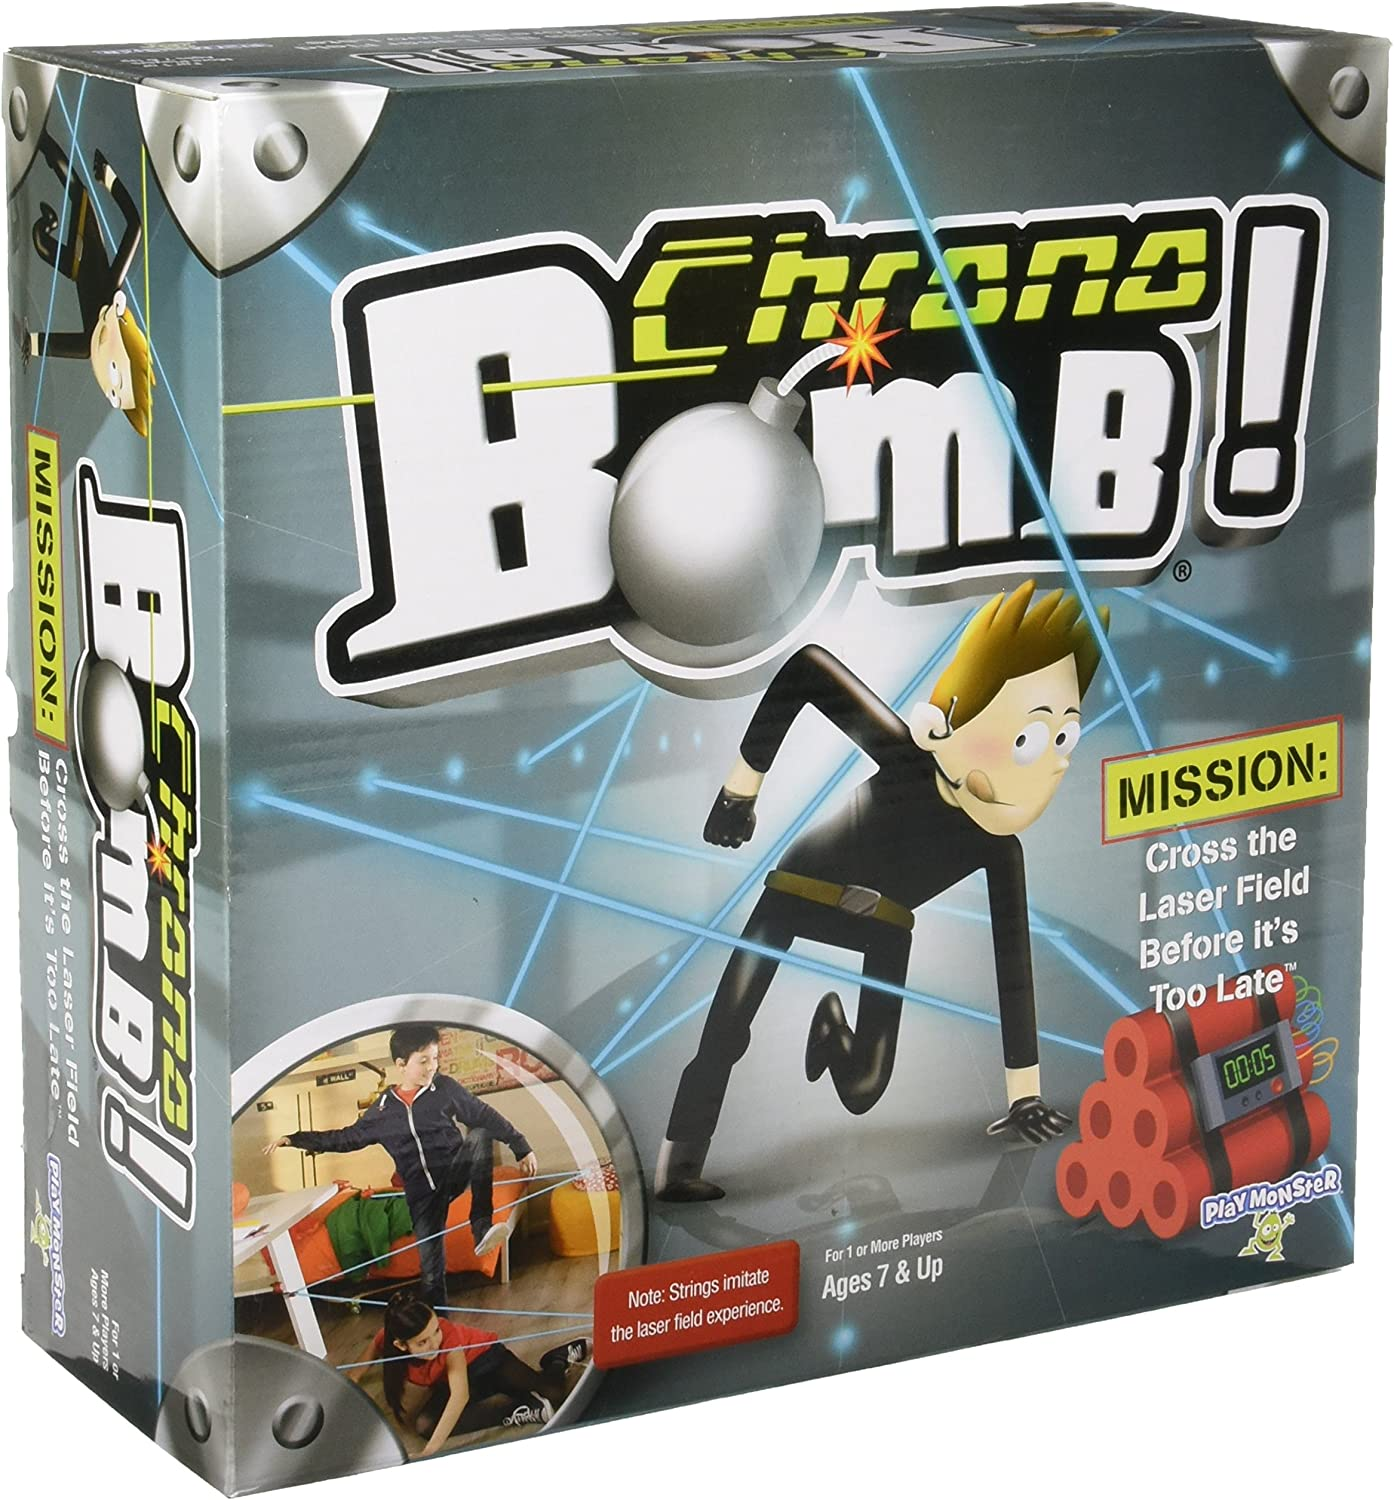 Chrono Bomb Action Game by Patch Products Inc.: Amazon.es: Juguetes y juegos